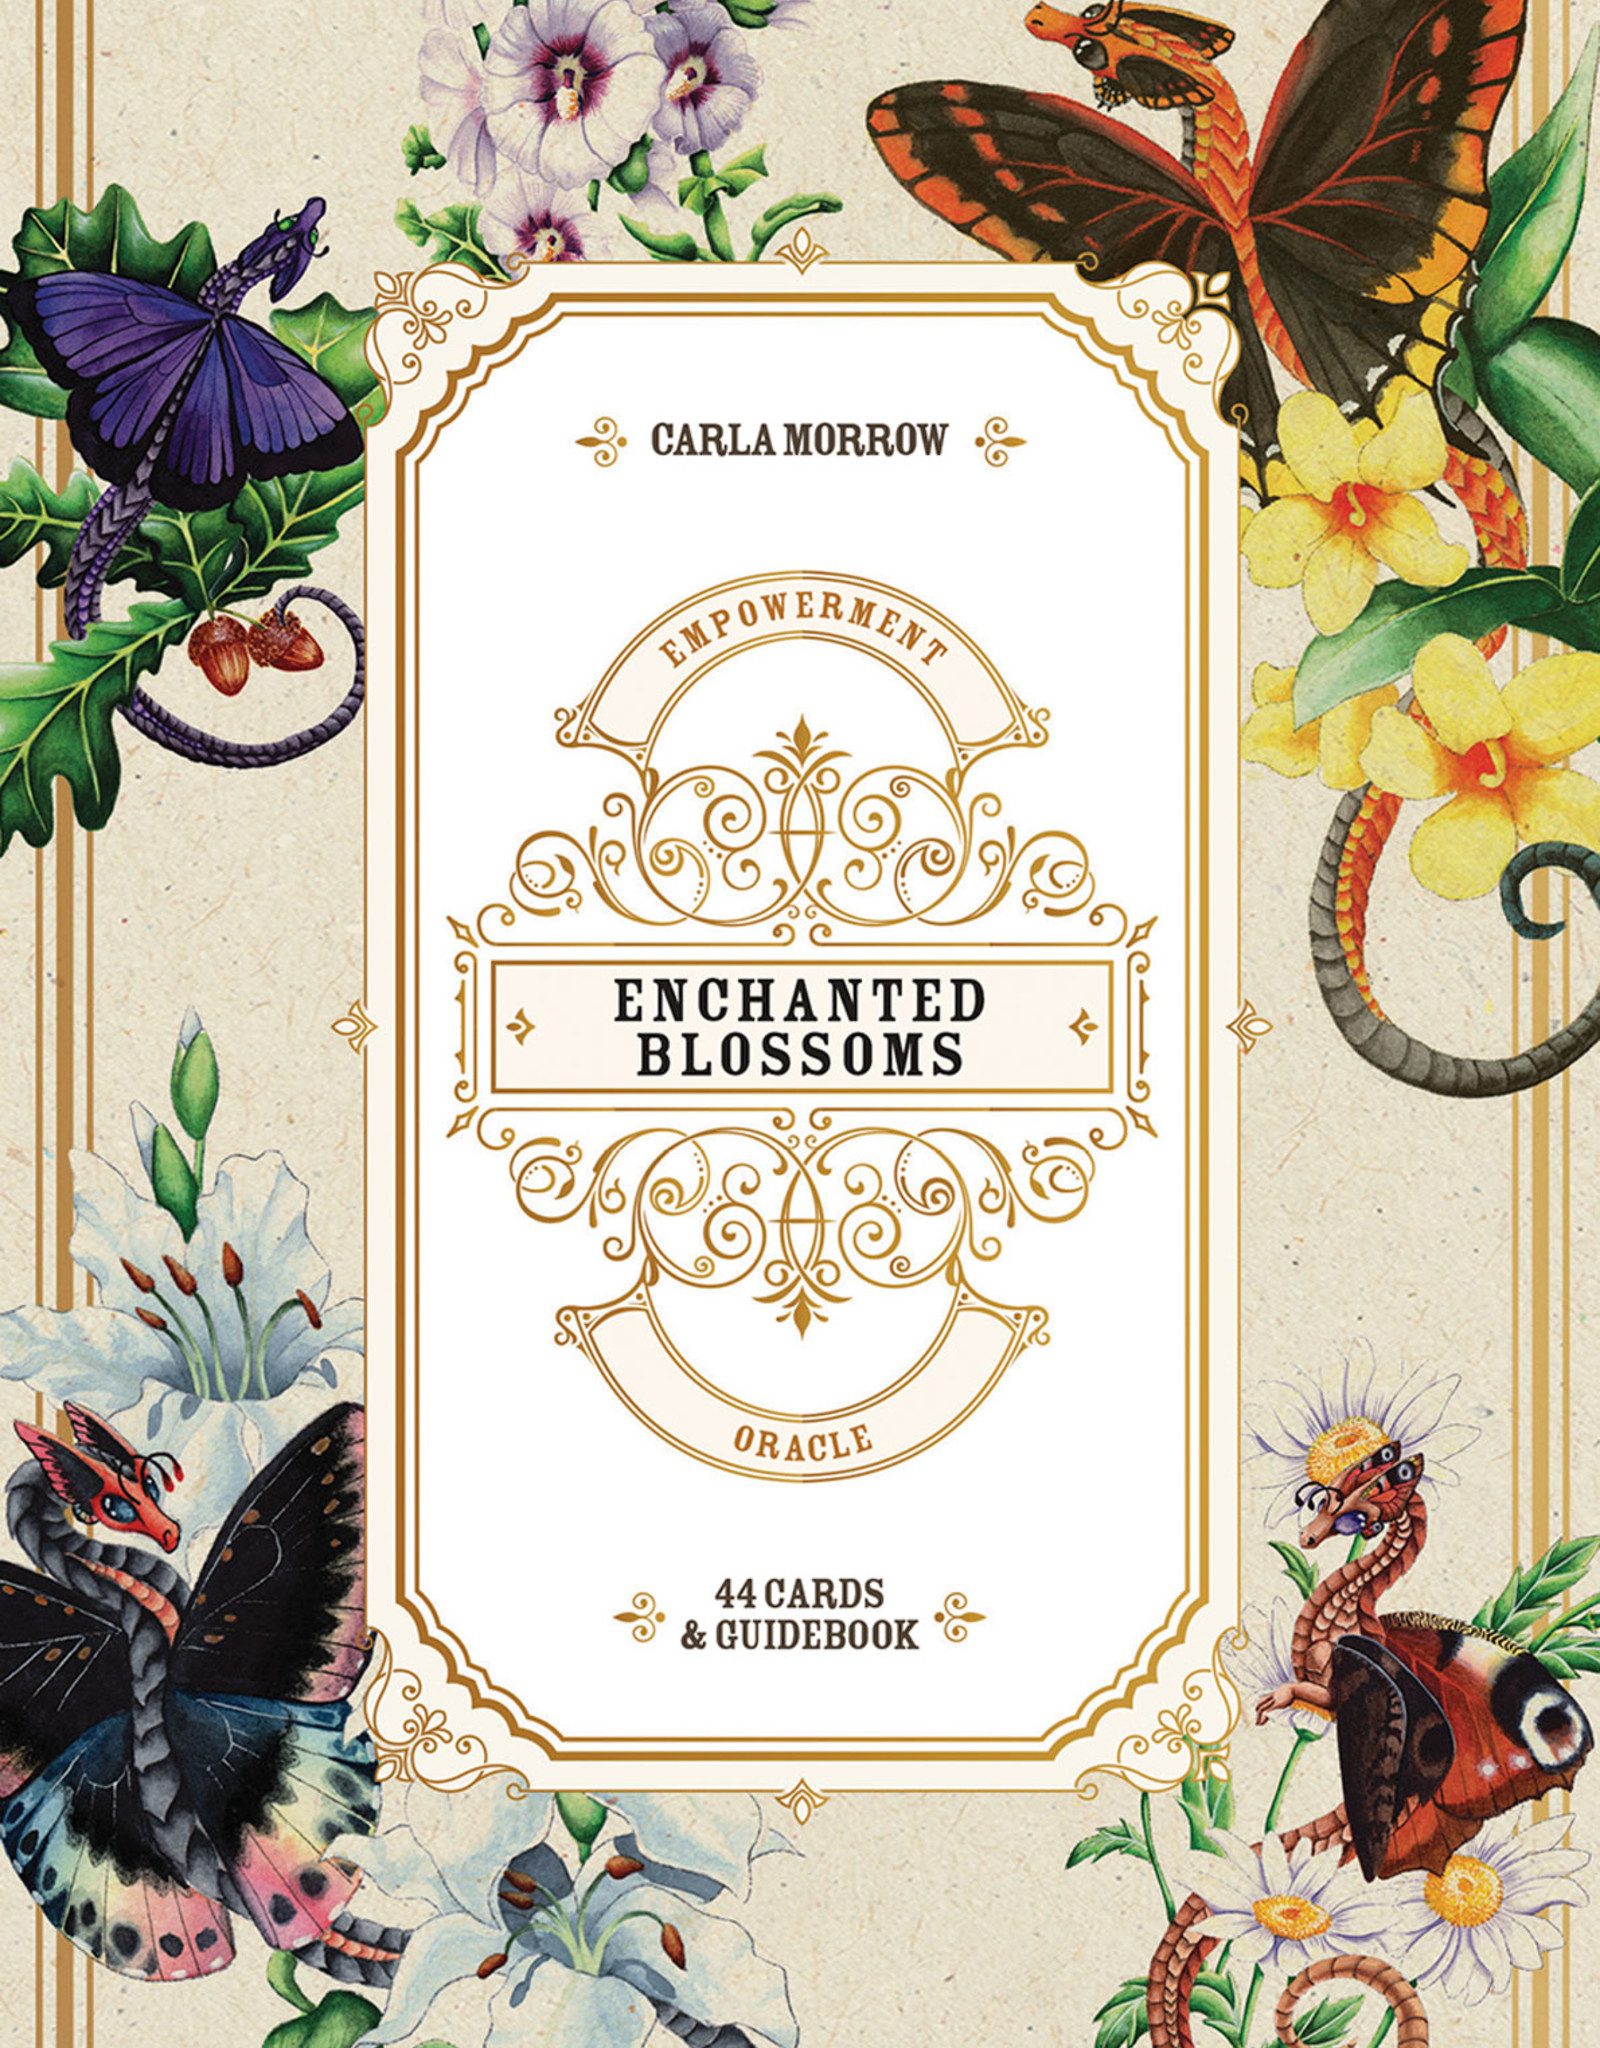 U.S. Games Systems, Inc. Enchanted Blossoms Empowerment Oracle